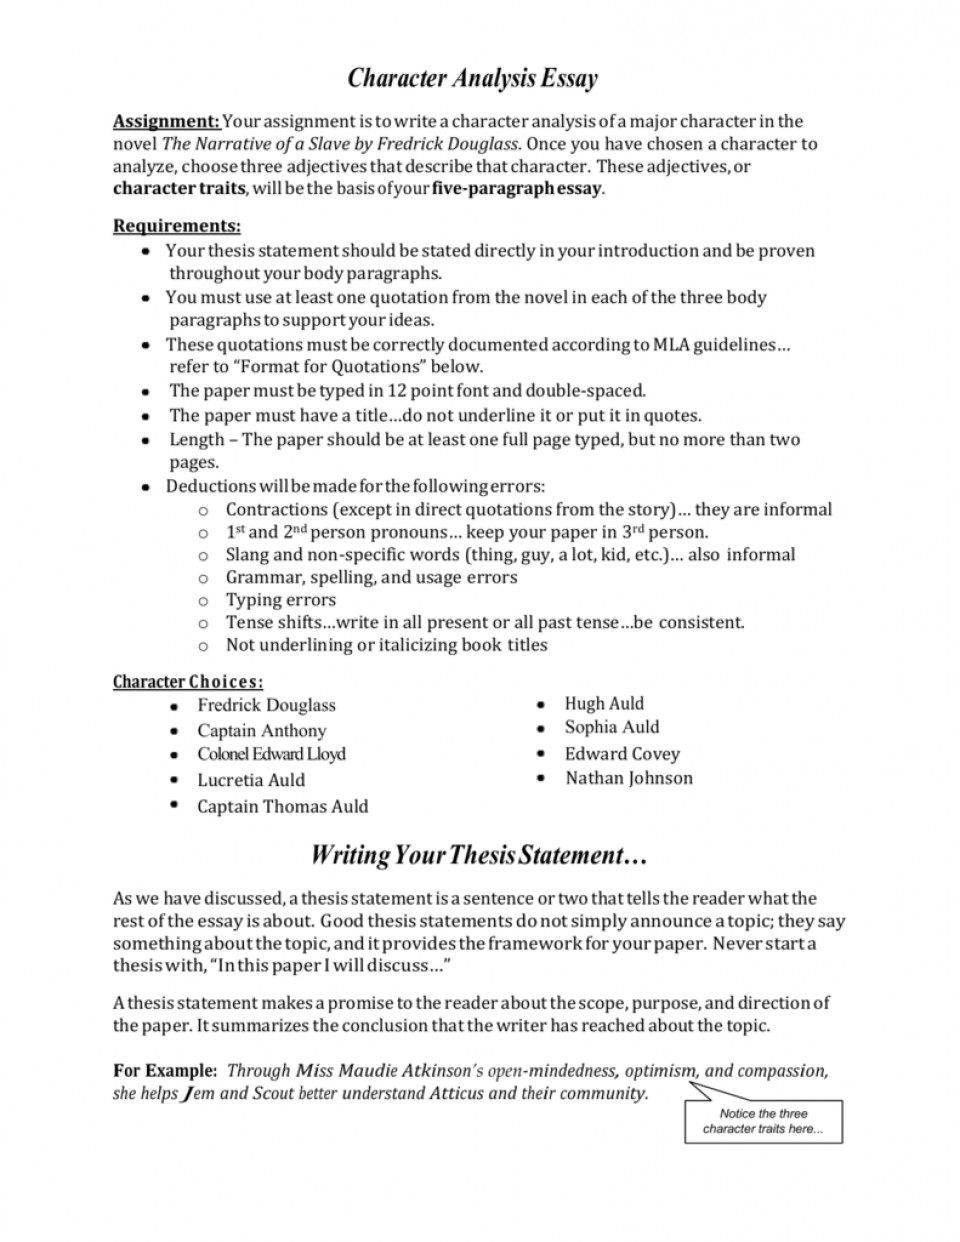 002 Character Essay 009629727 1 Wondrous Prompts Rubric Writing 960